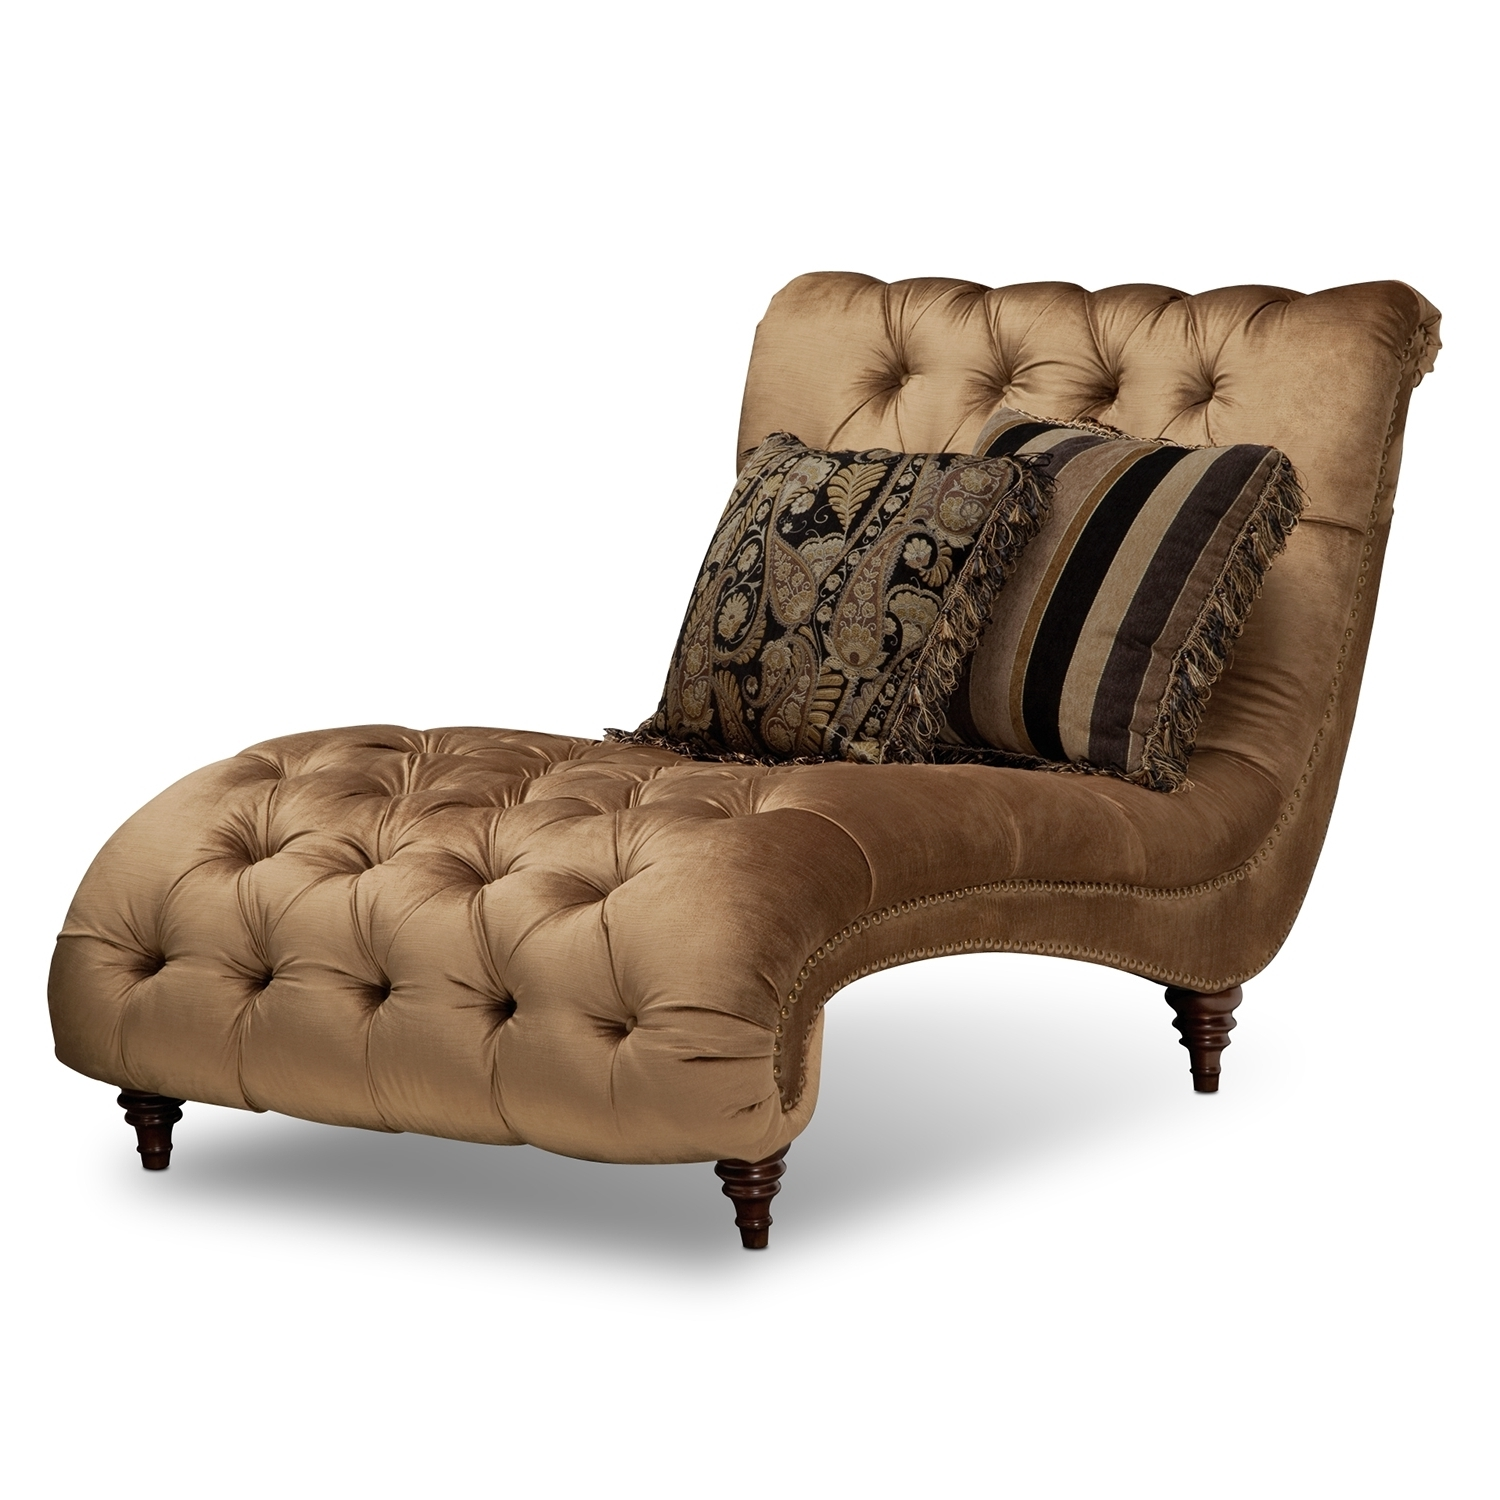 Gold Chaise Lounges Regarding Latest Gold Tufted Chaise Lounge Chair With Accent Pillows In Bedroom (View 7 of 15)